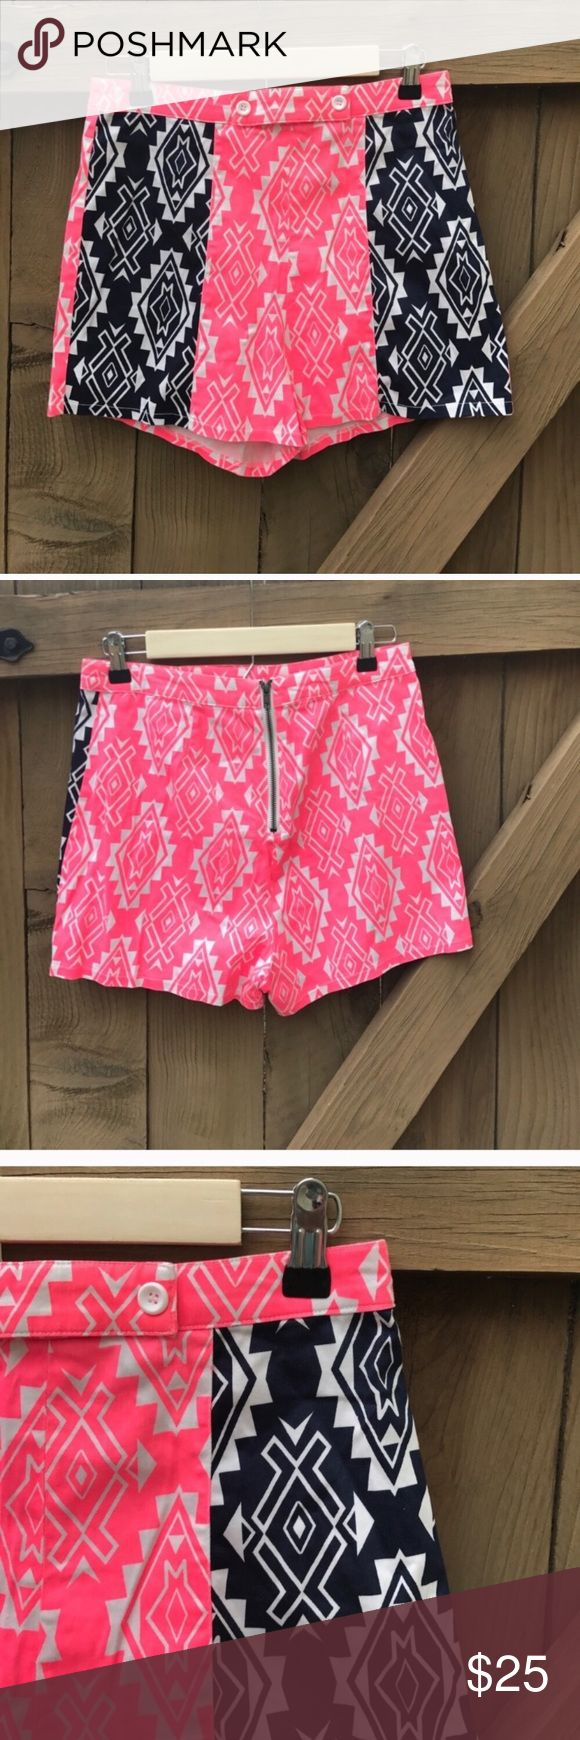 Flying Tomato high waisted aztec print shorts Flying Tomato high waisted aztec print shorts size L:  waist 14 in across, 13 in long from top to bottom, 2 in inseam: location- bin 10 Flying Tomato Shorts